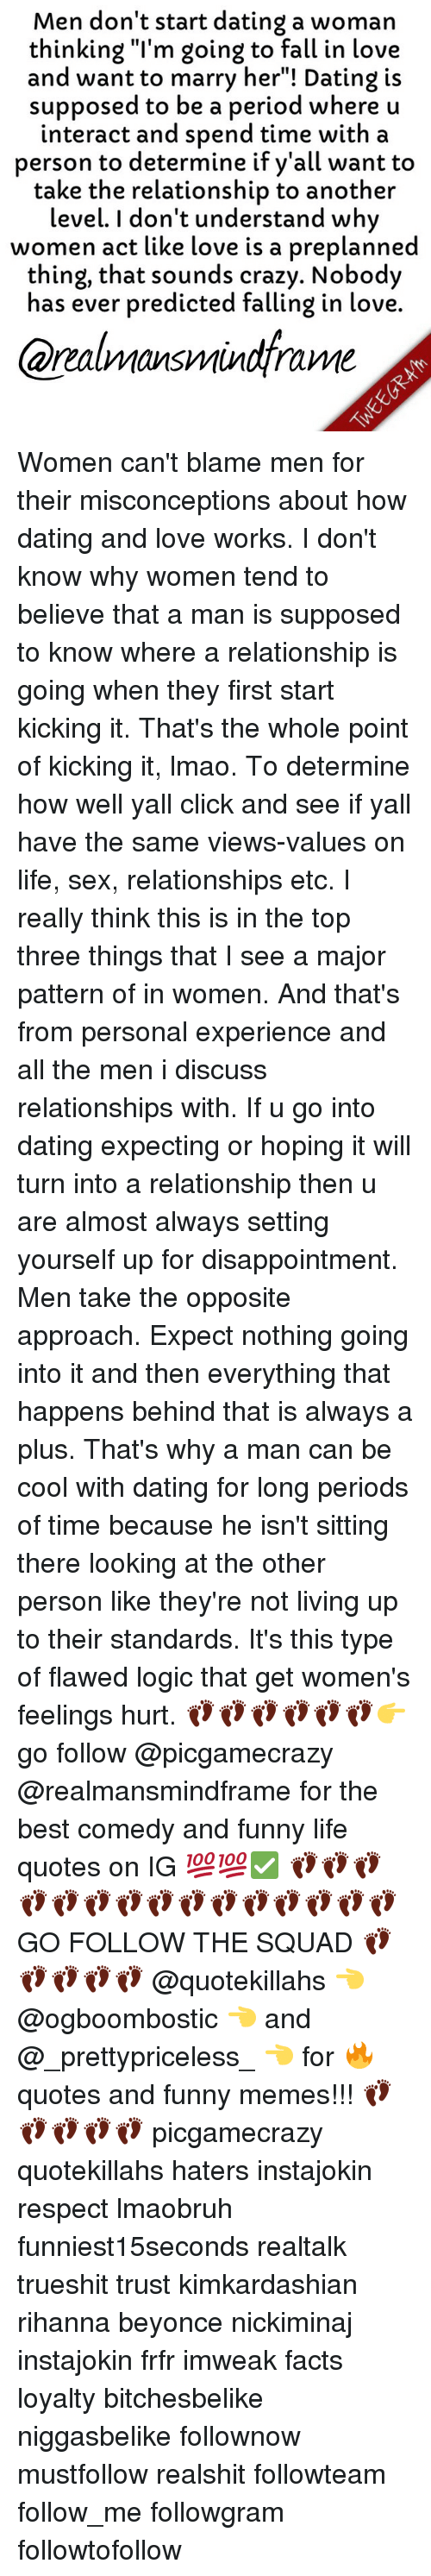 Inexperienced girl dating experienced guy